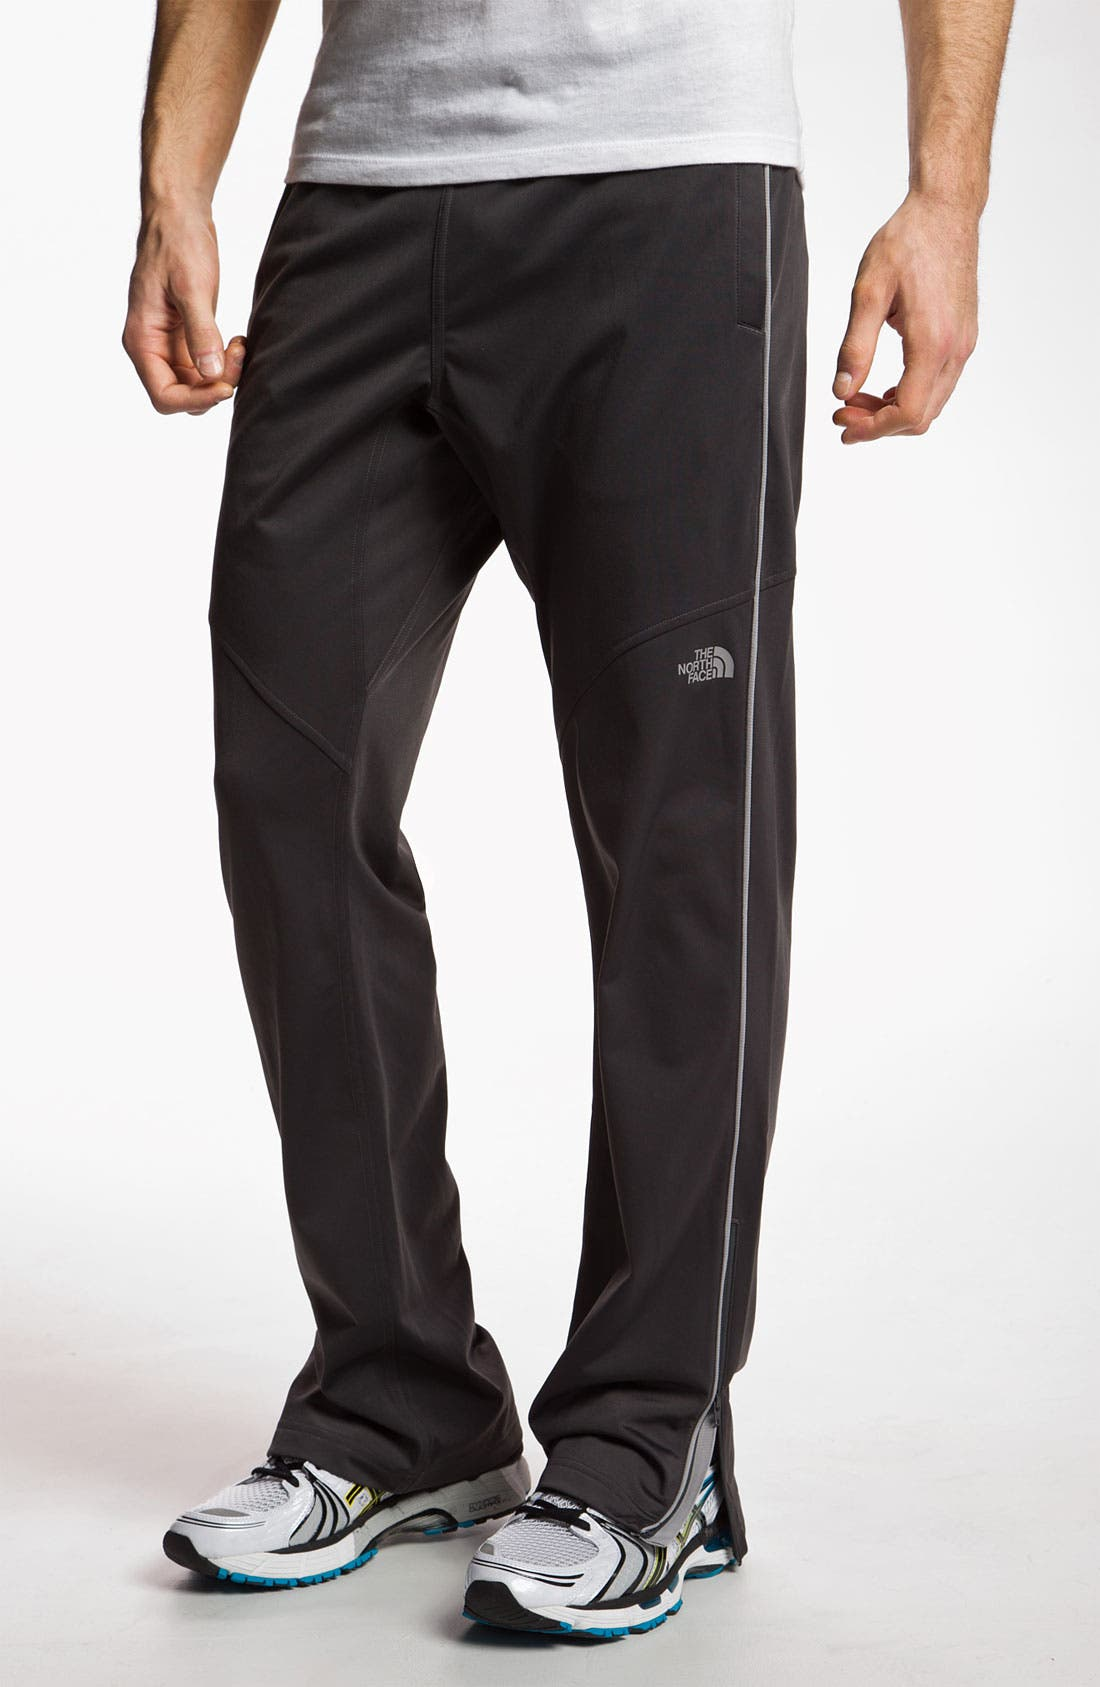 Main Image - The North Face 'Flex' Tricot Track Pants (Online Exclusive)